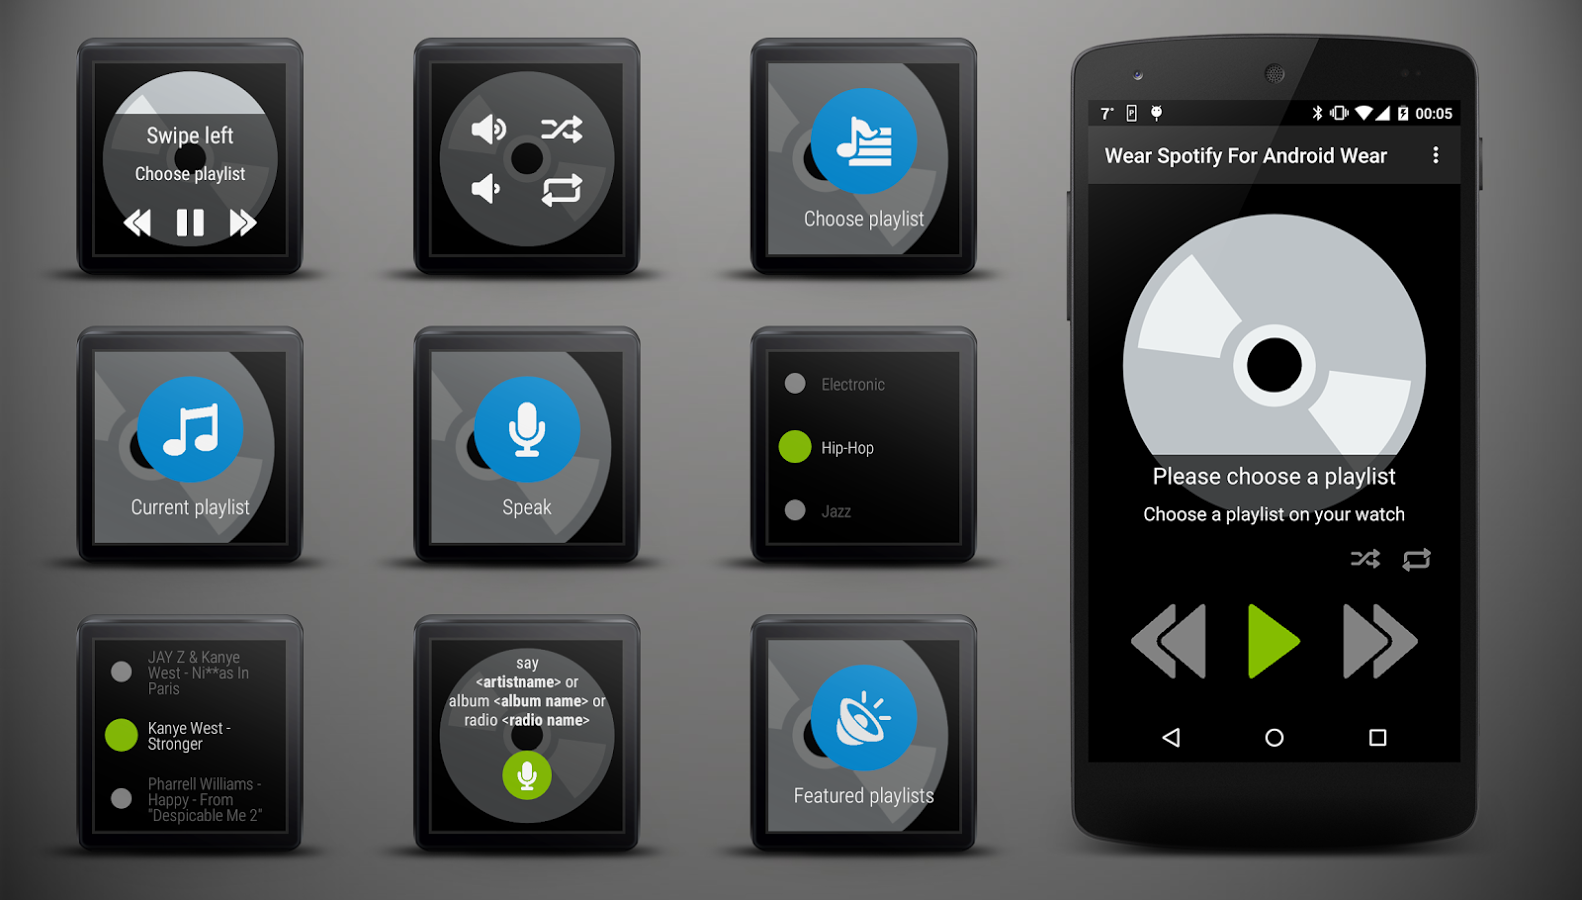 Wear Spotify For Wear OS (Android Wear) App Ranking and